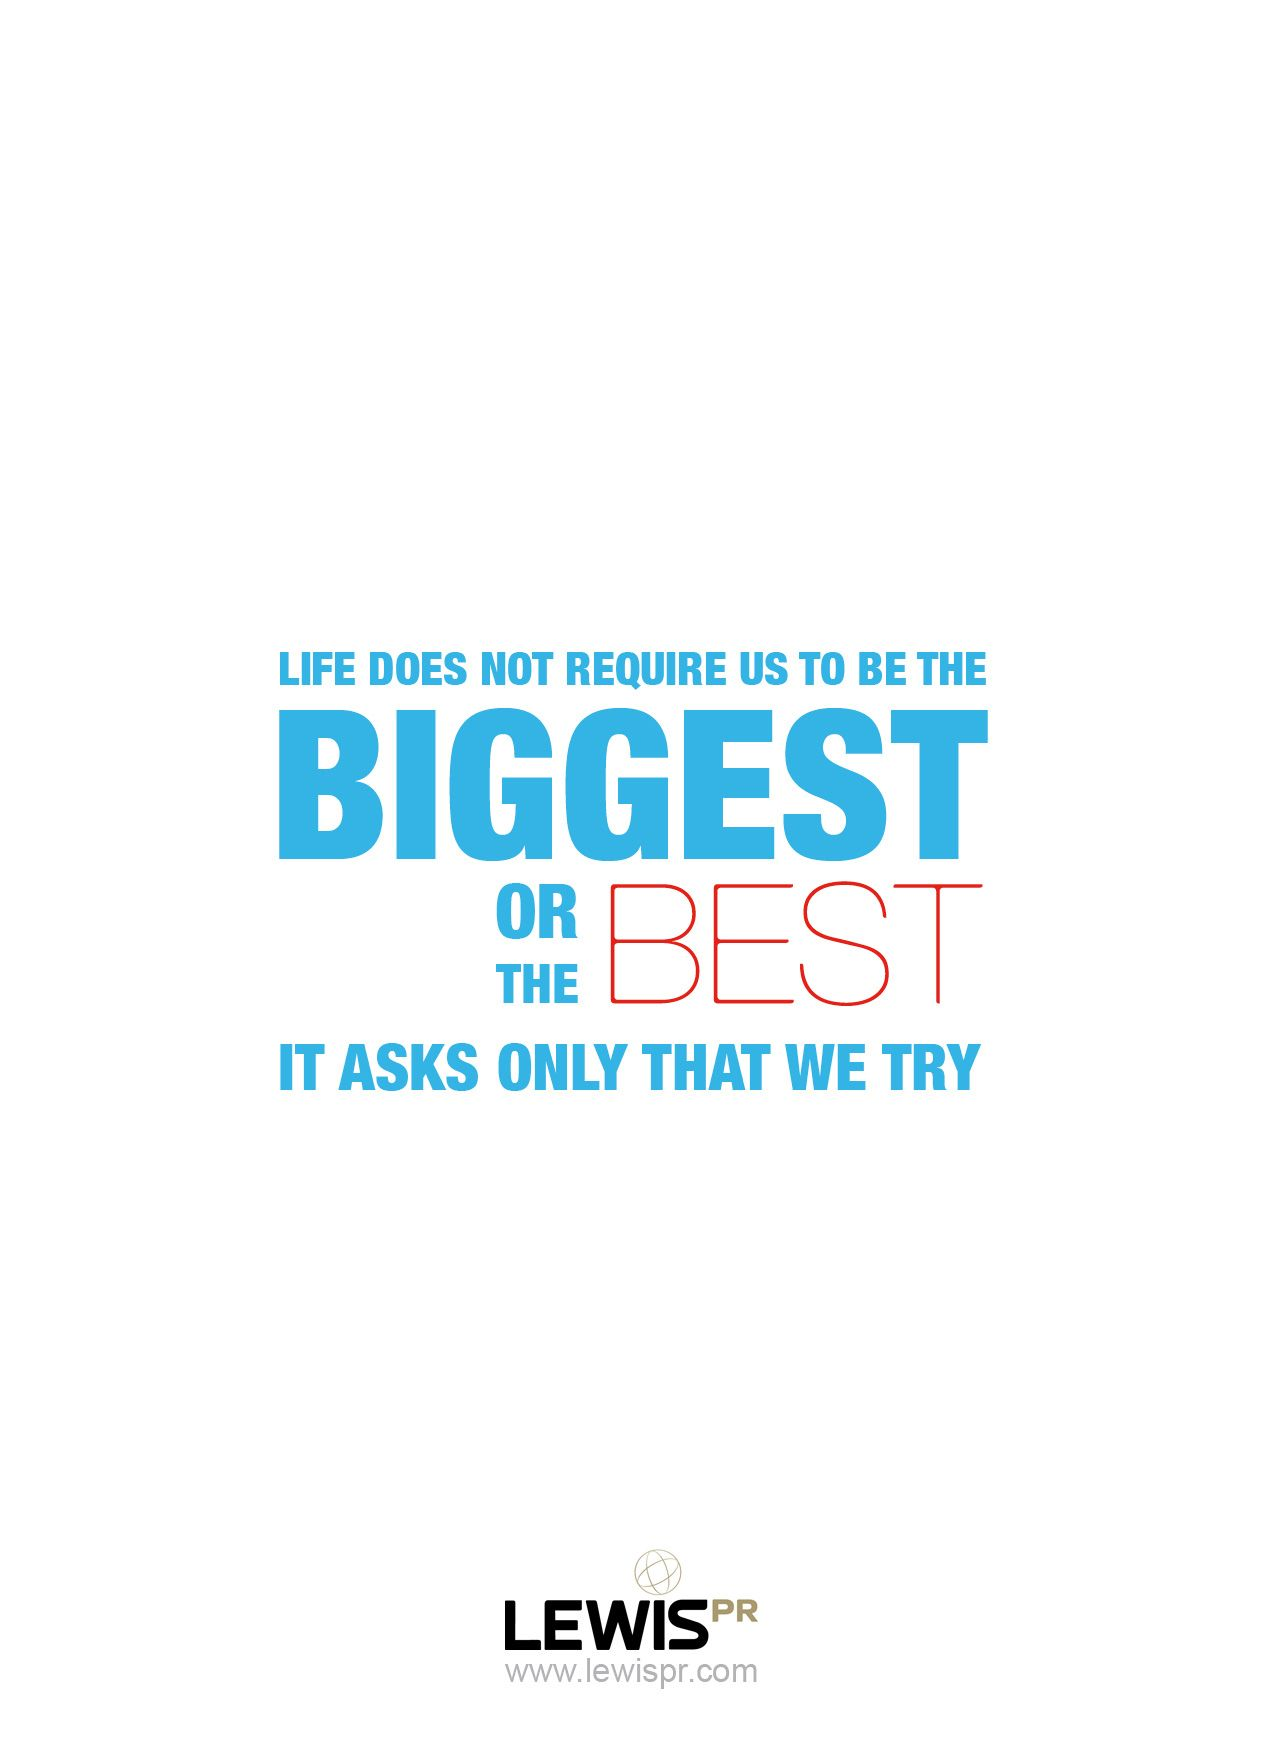 """Life does not require us to be the biggest or the best"